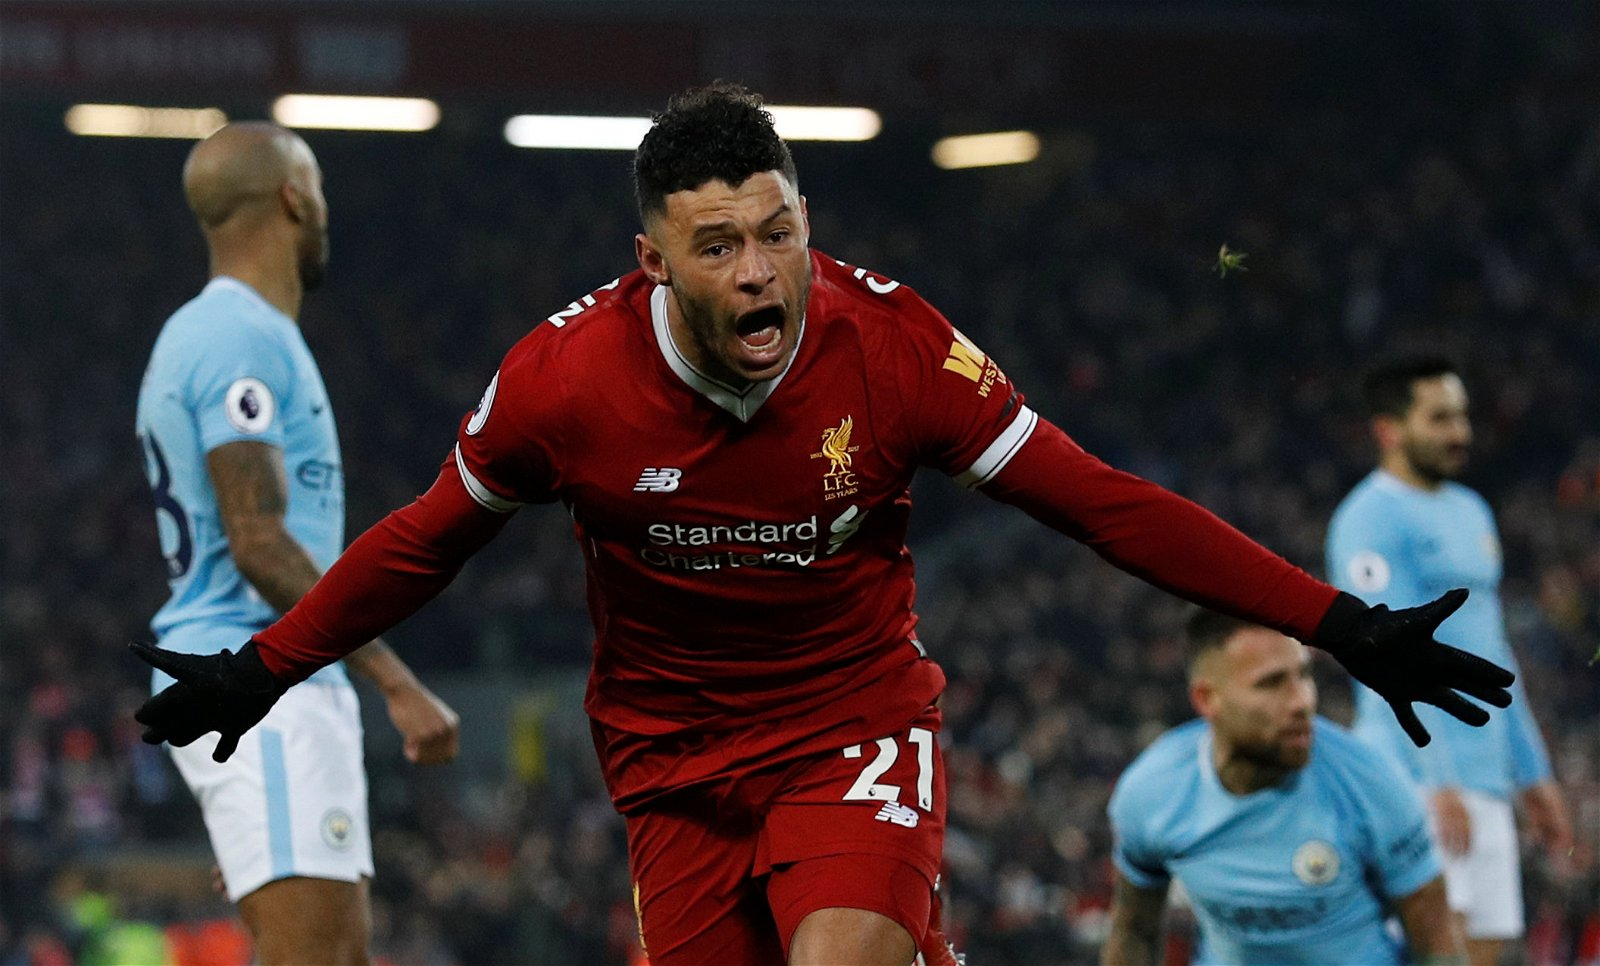 Alex Oxlade-Chamberlain celebrates scoring against Manchester City